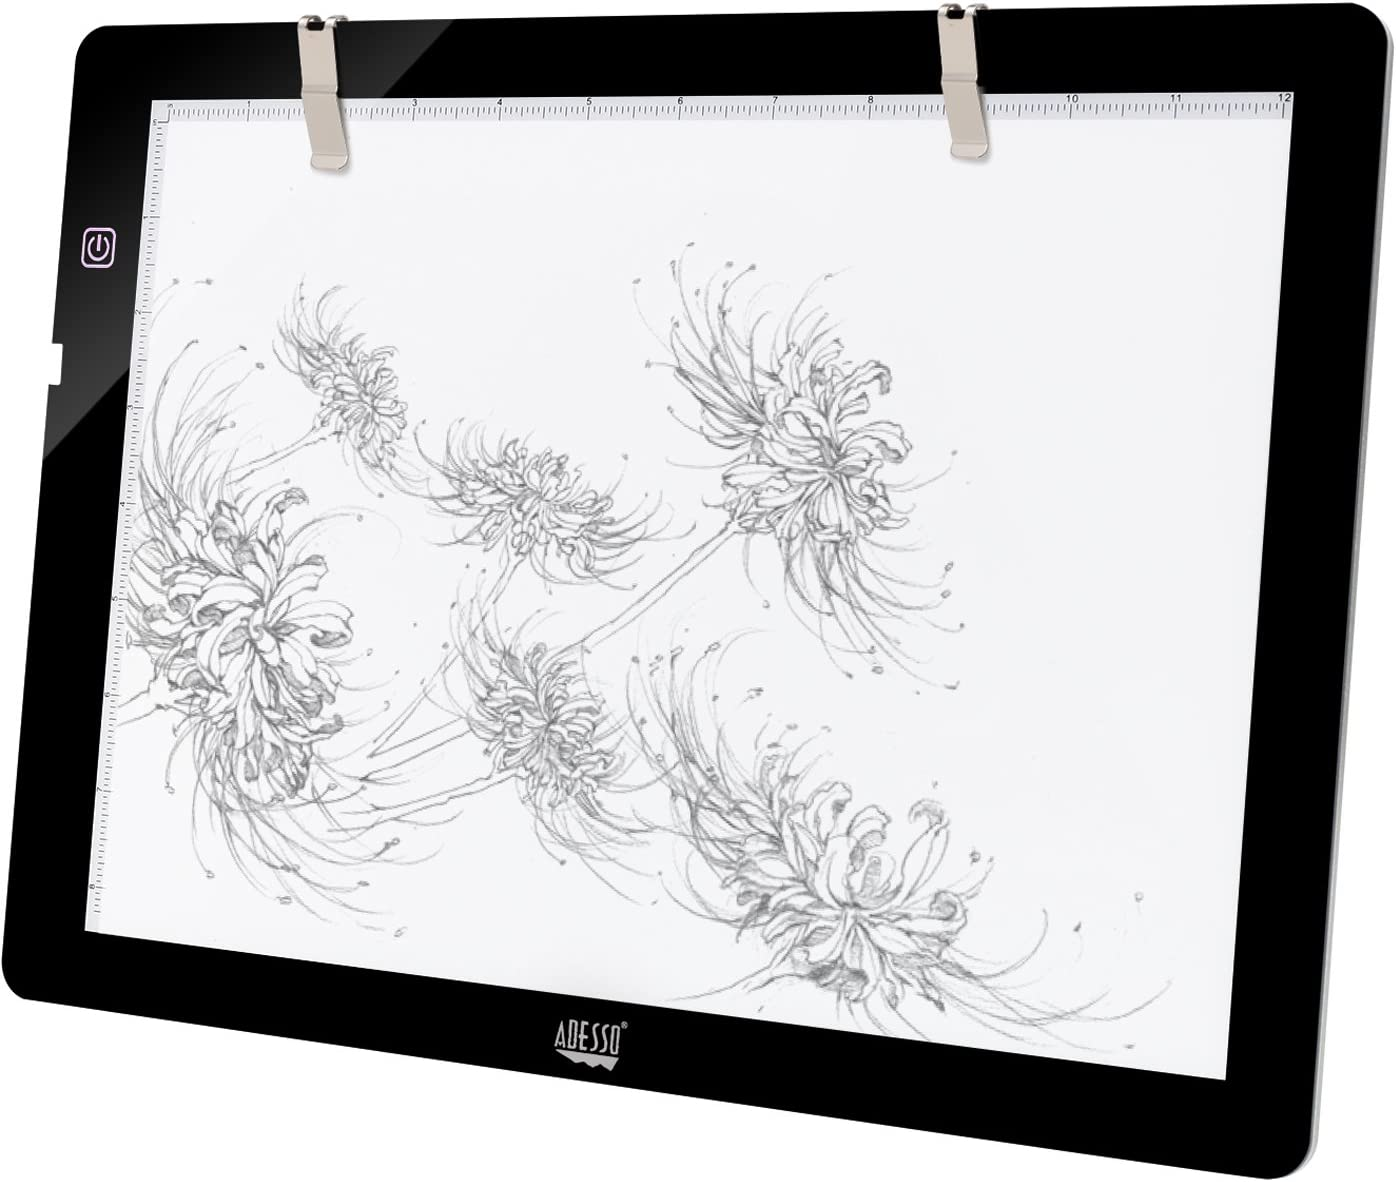 Black A4 Ultra-Thin Portable LED Light Box Tracer USB Power LED Artcraft Adesso 12 x 9 Tracing Pad CyberPad P1